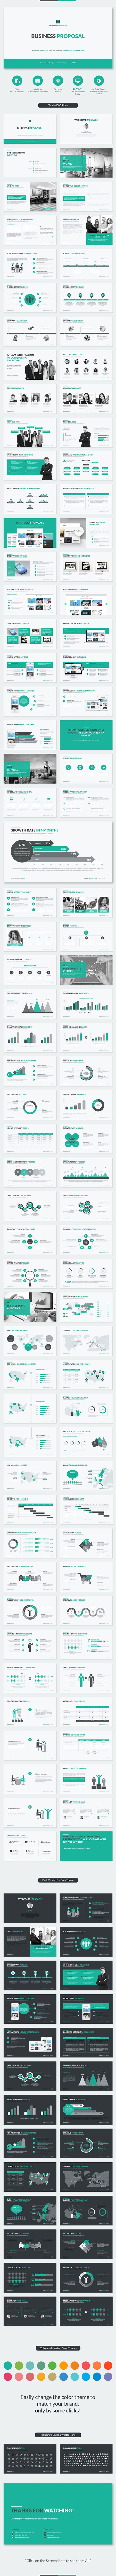 Business Proposal PowerPoint Template #design Download: http://graphicriver.net/item/business-proposal-powerpoint-template/11833931?ref=ksioks